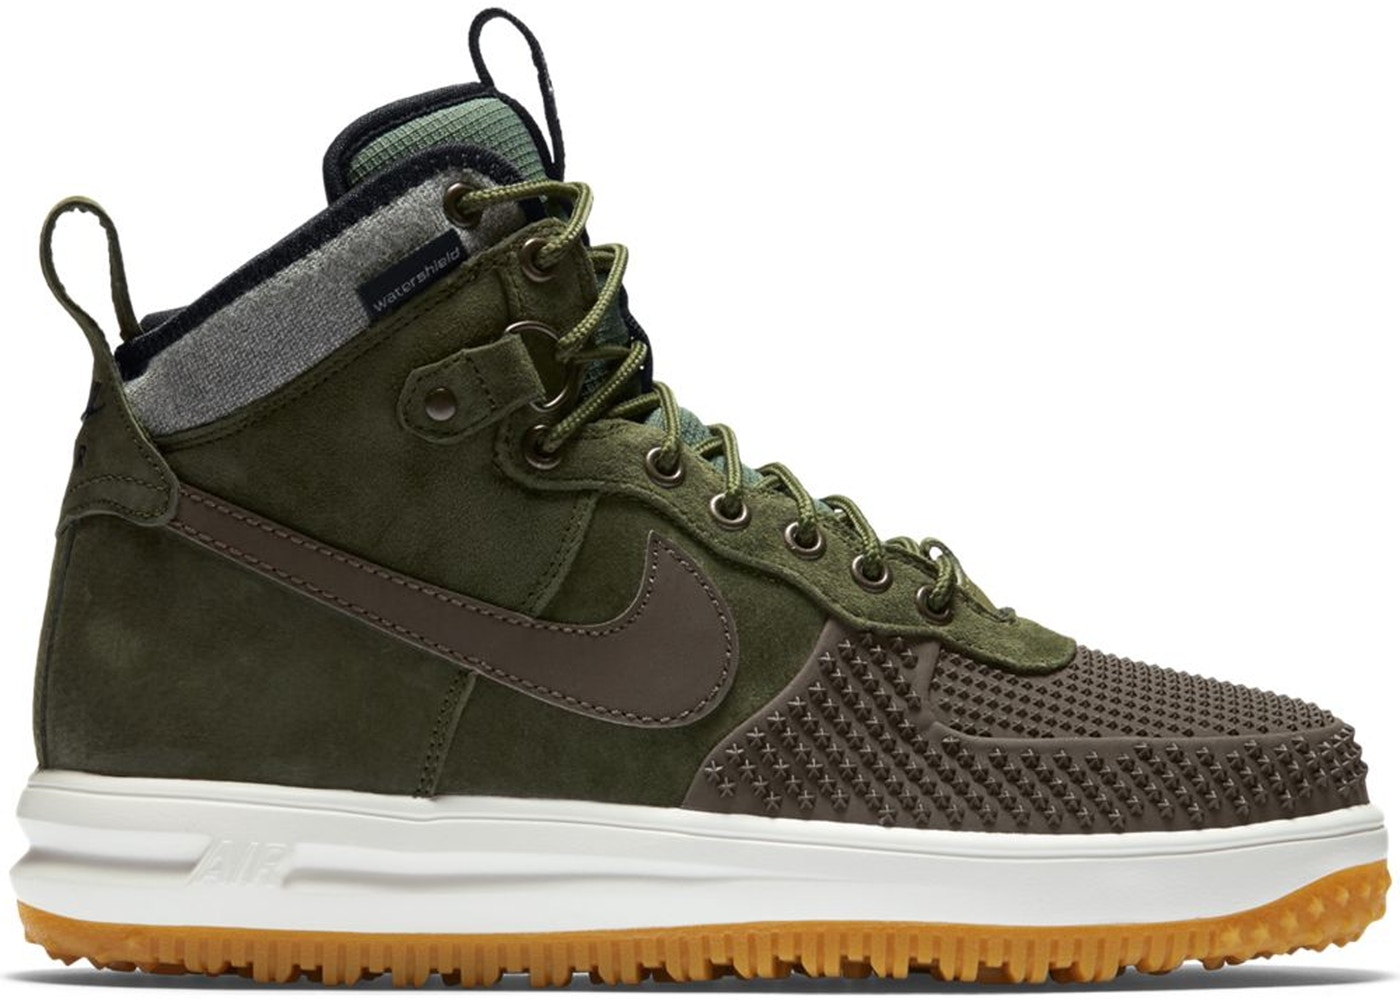 huge selection of c72f3 f5121 Nike Lunar Force 1 Duckboot Baroque Brown Army Olive